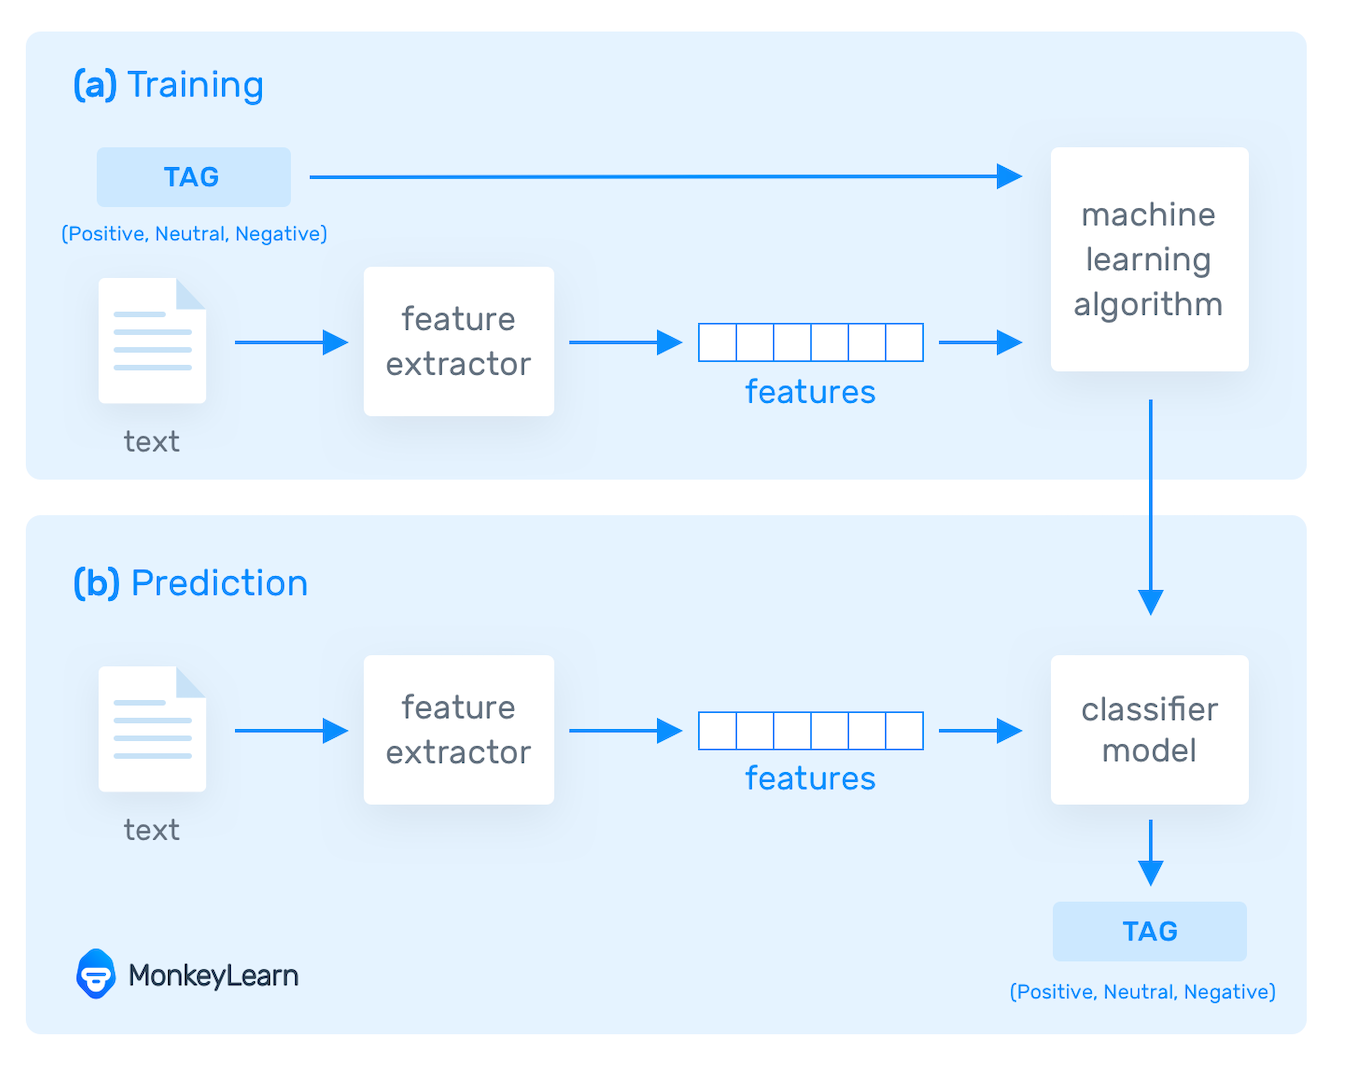 A diagram showing how training a machine learning text analysis model works.